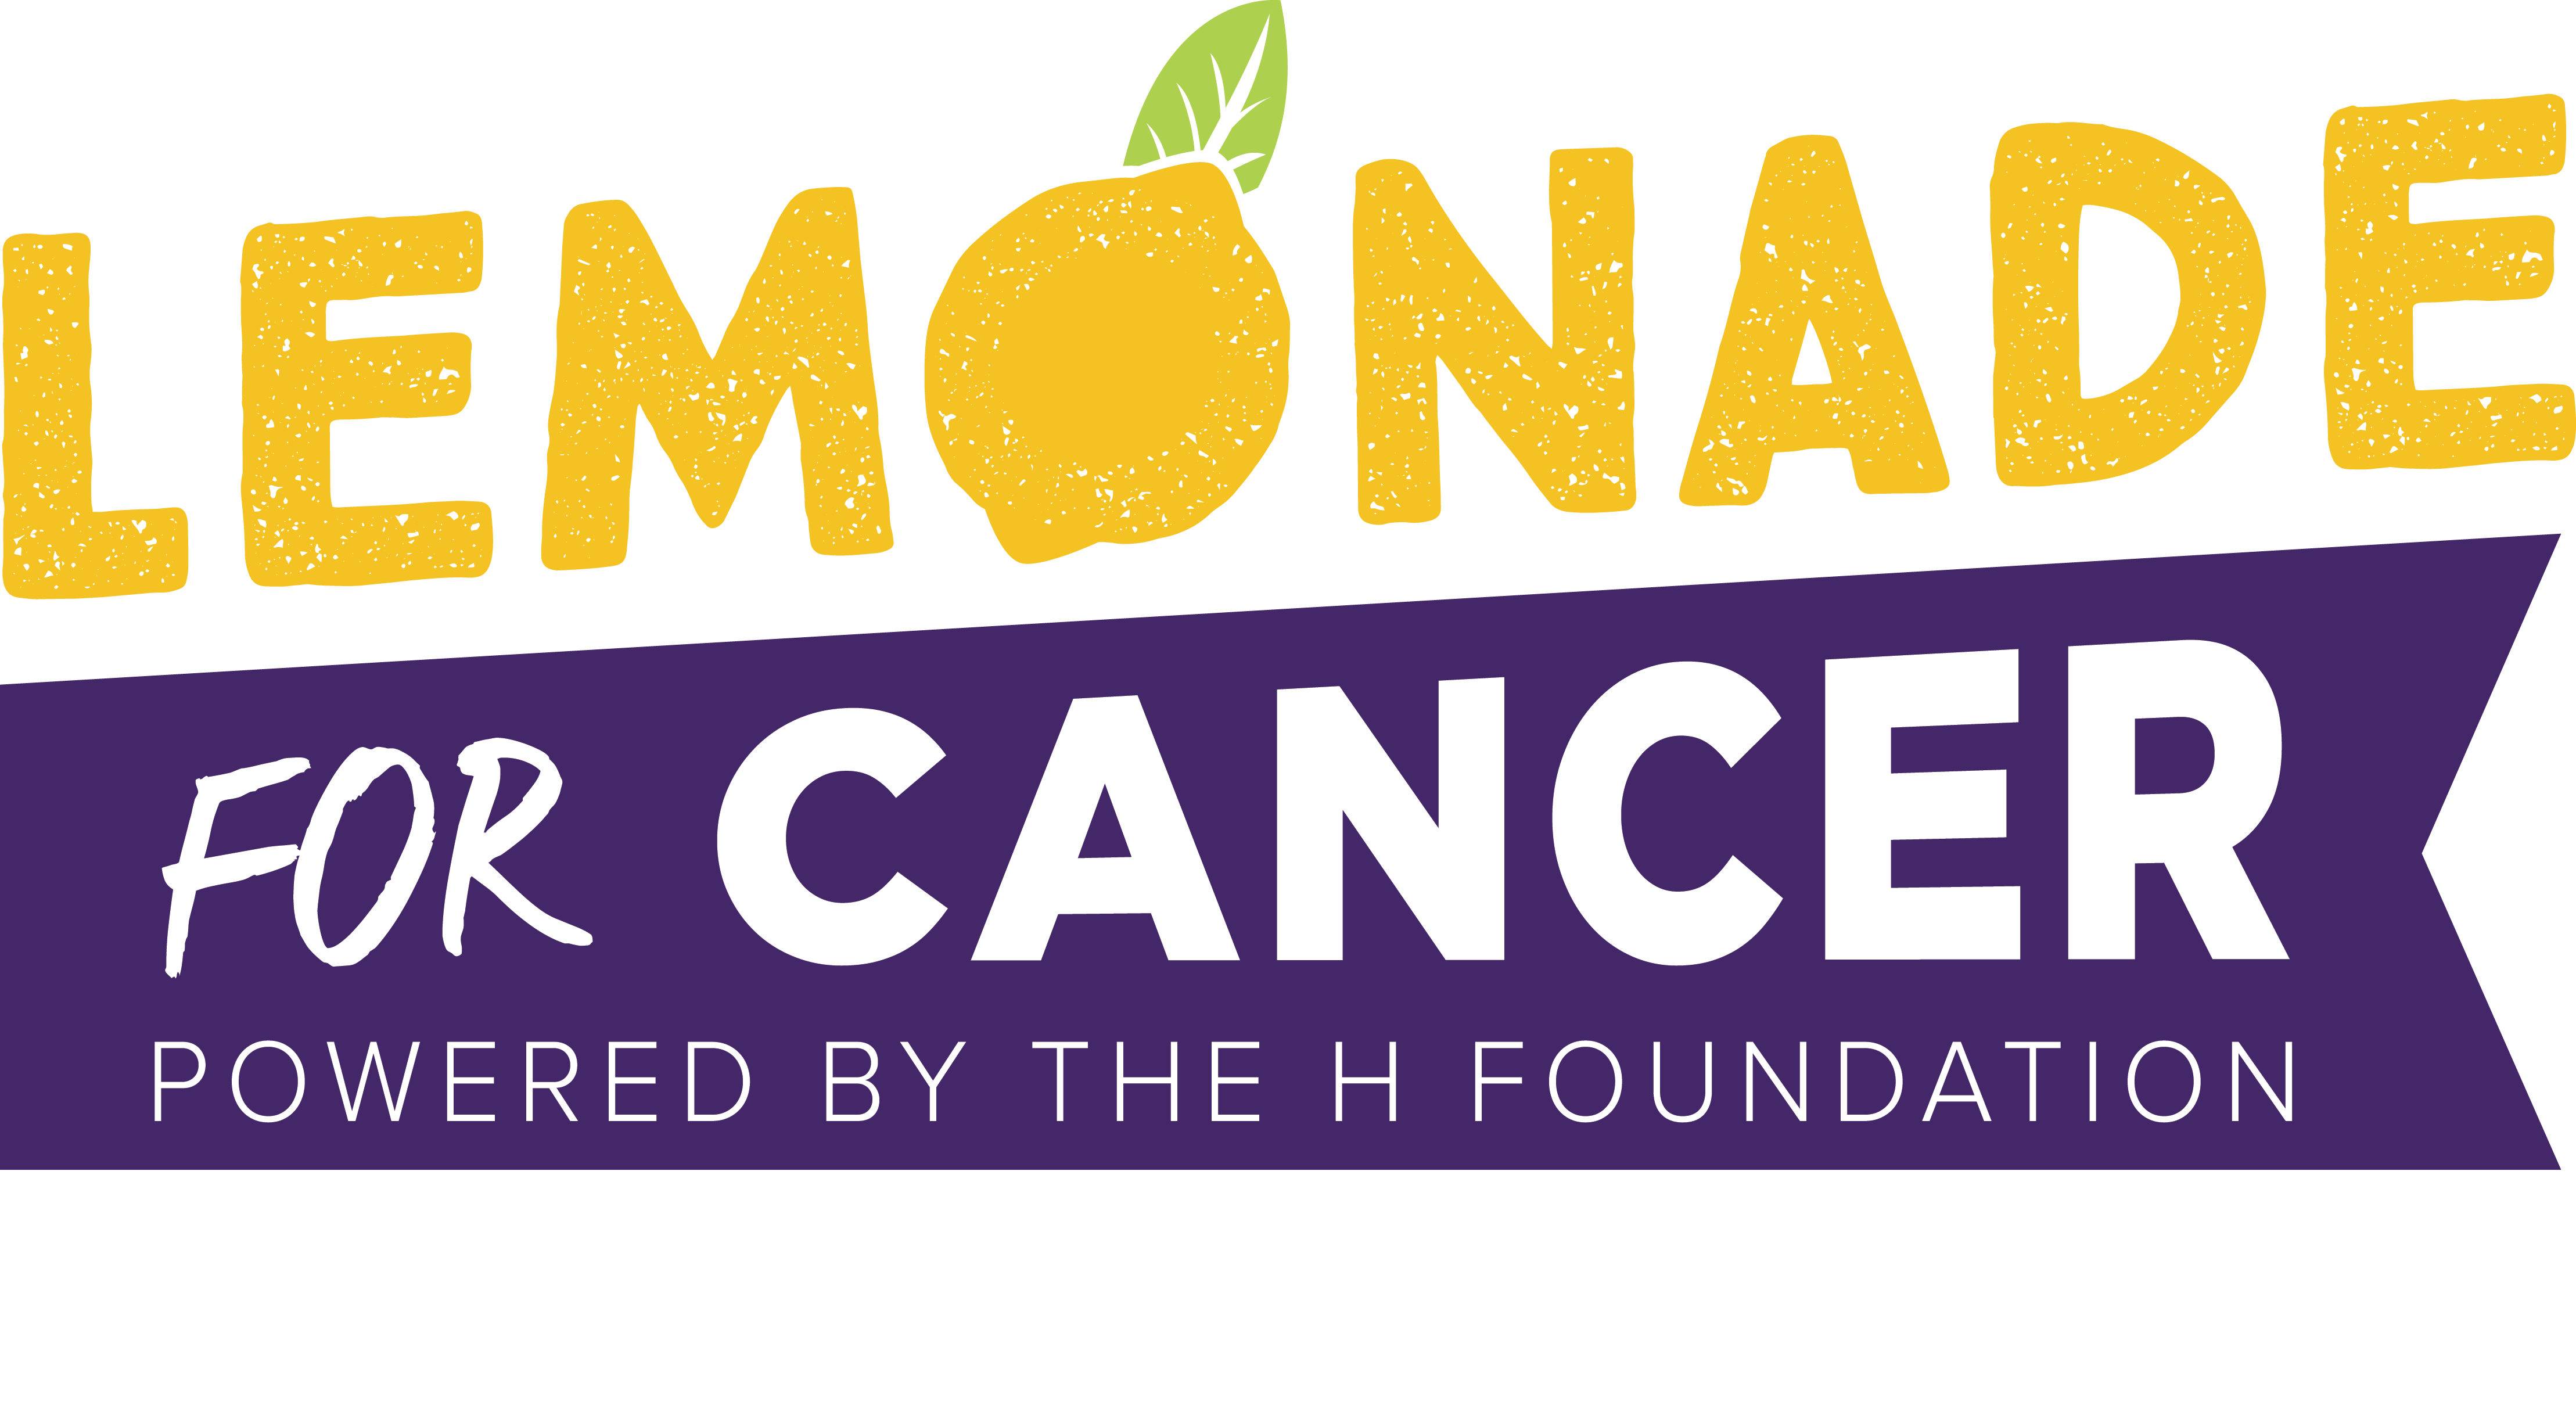 Lemonade logo png. Stand to beat cancer